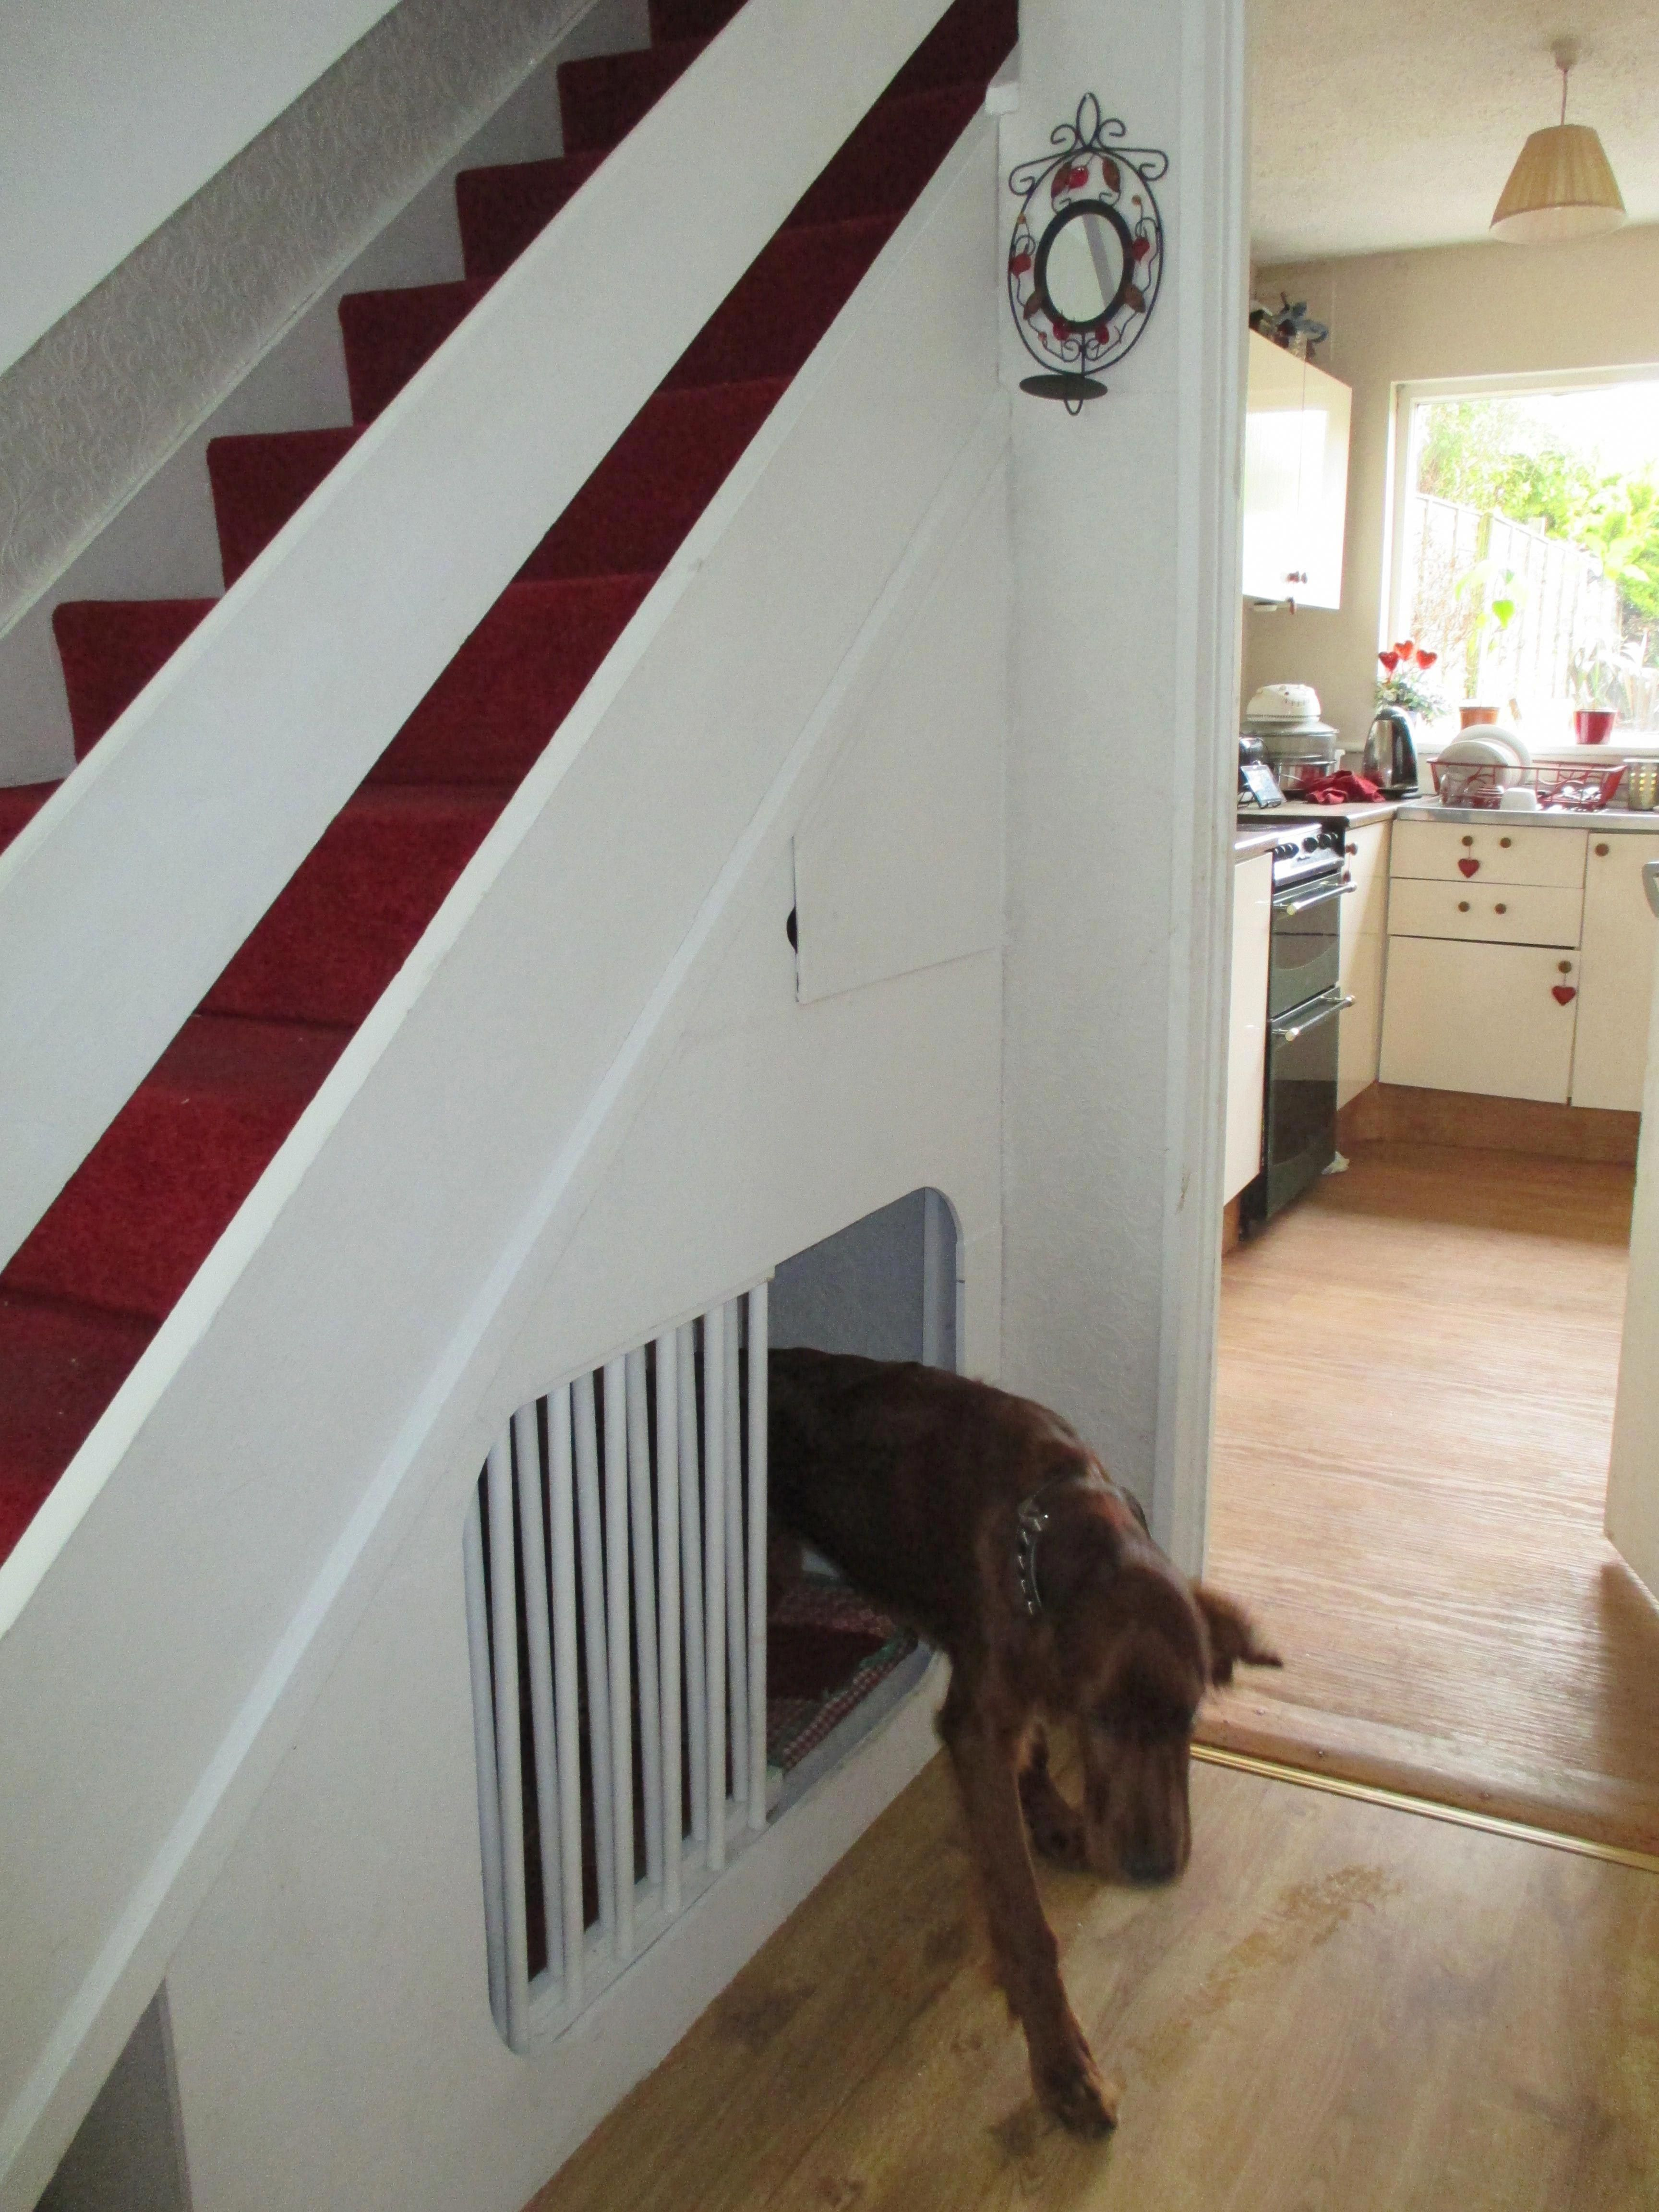 Dogs Hacks Dogs Diy Dogs Room Dogs Pictures Dogs Bed Dogs Collar Dogs Clothes Dogsfunny Under Stairs Dog House Dog Spaces Dog Rooms